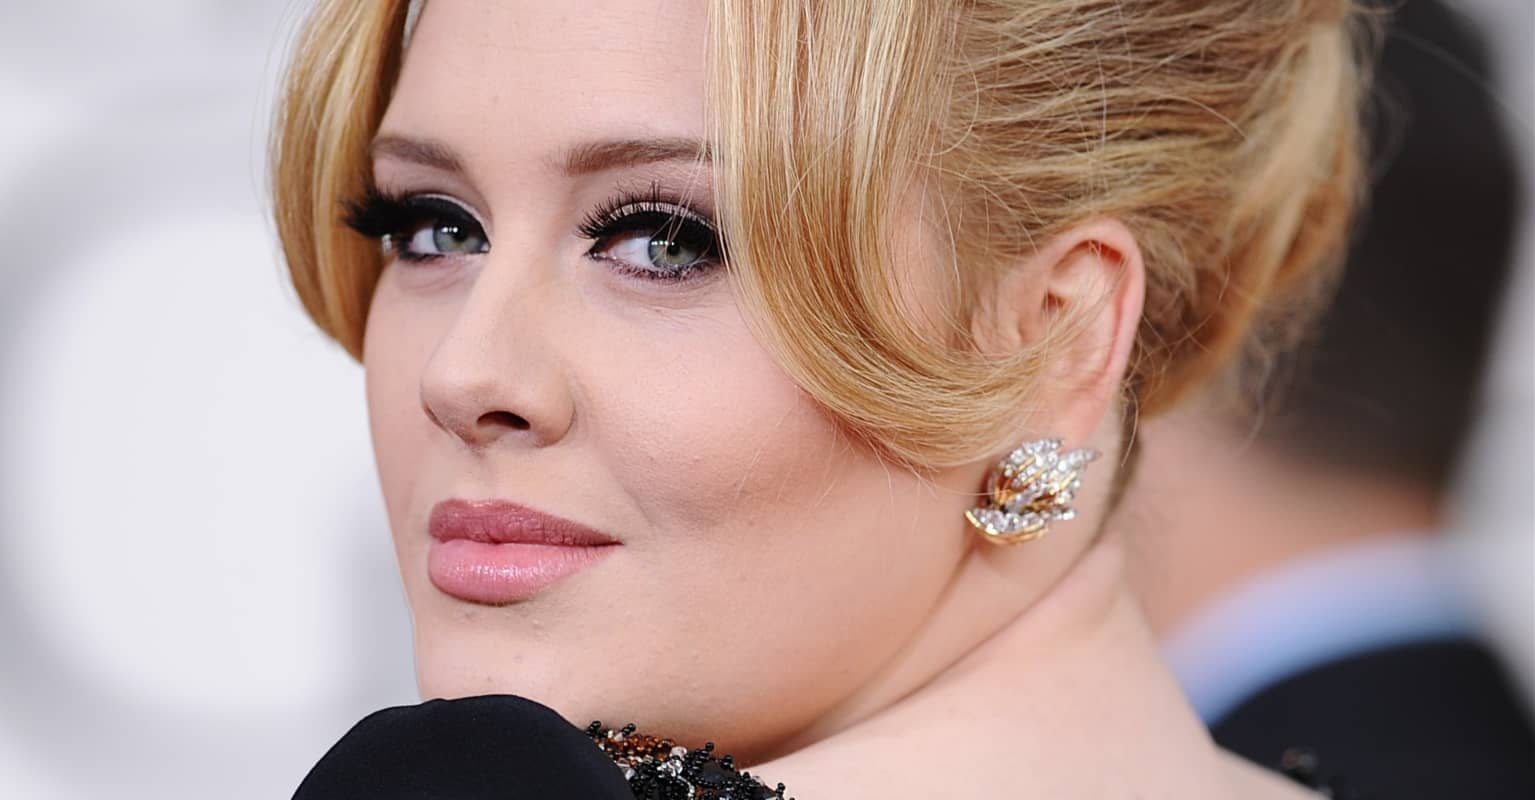 Adele suffers song leak and fears it could be 'disastrous' for her new music